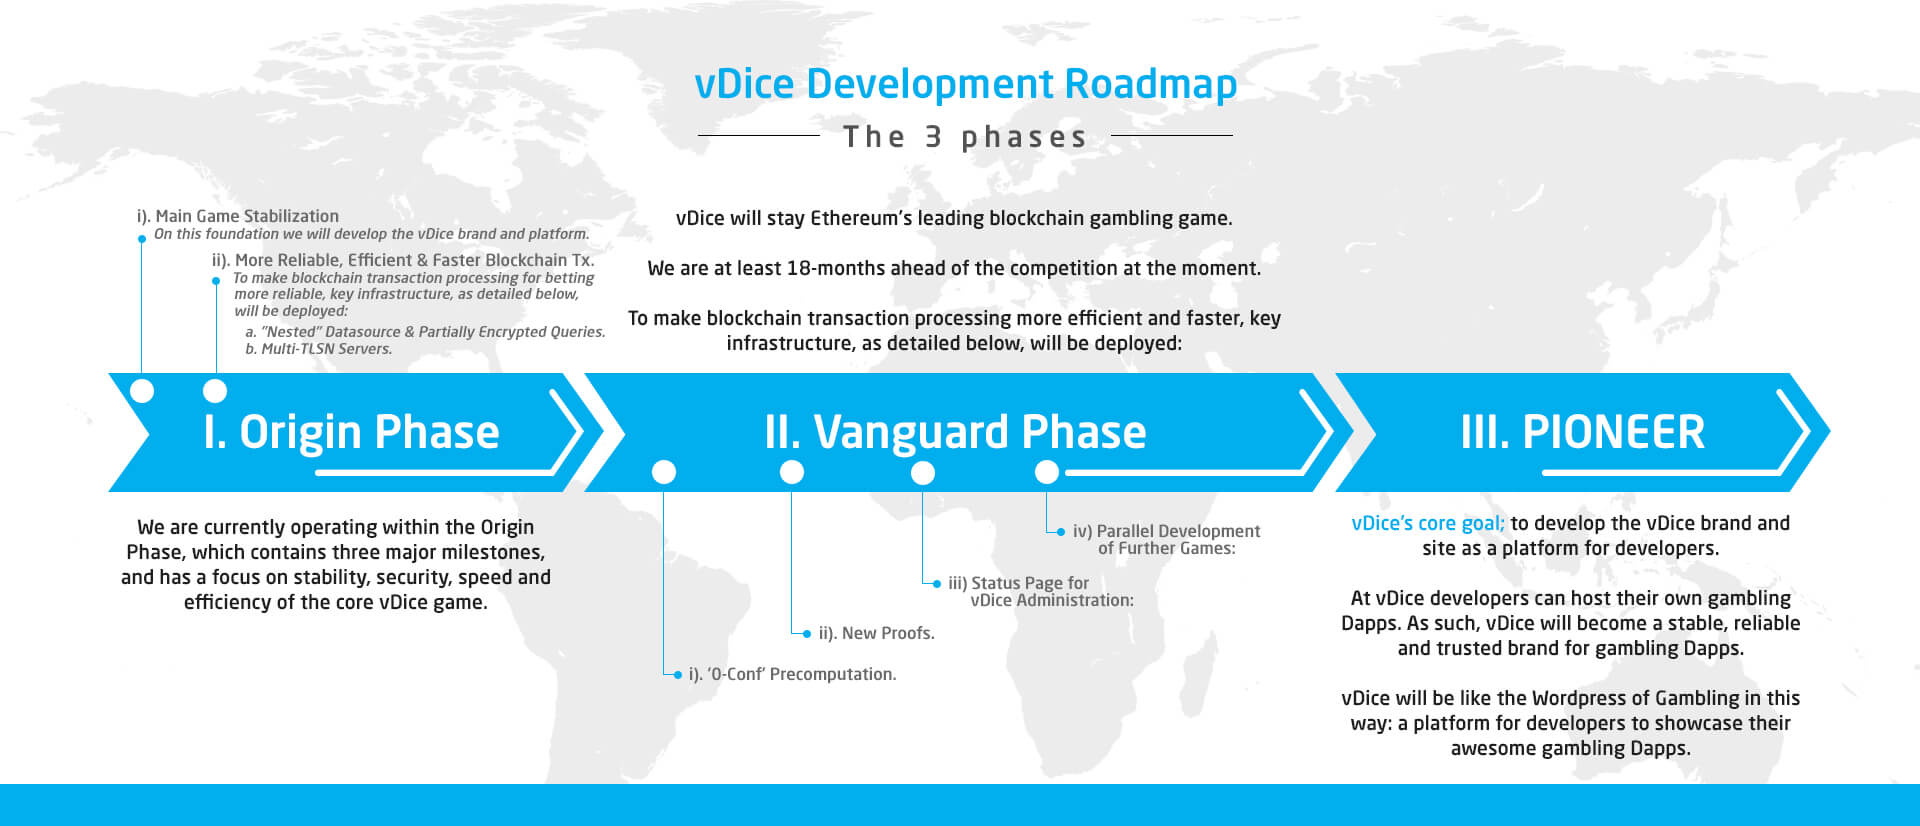 vDice Roadmap